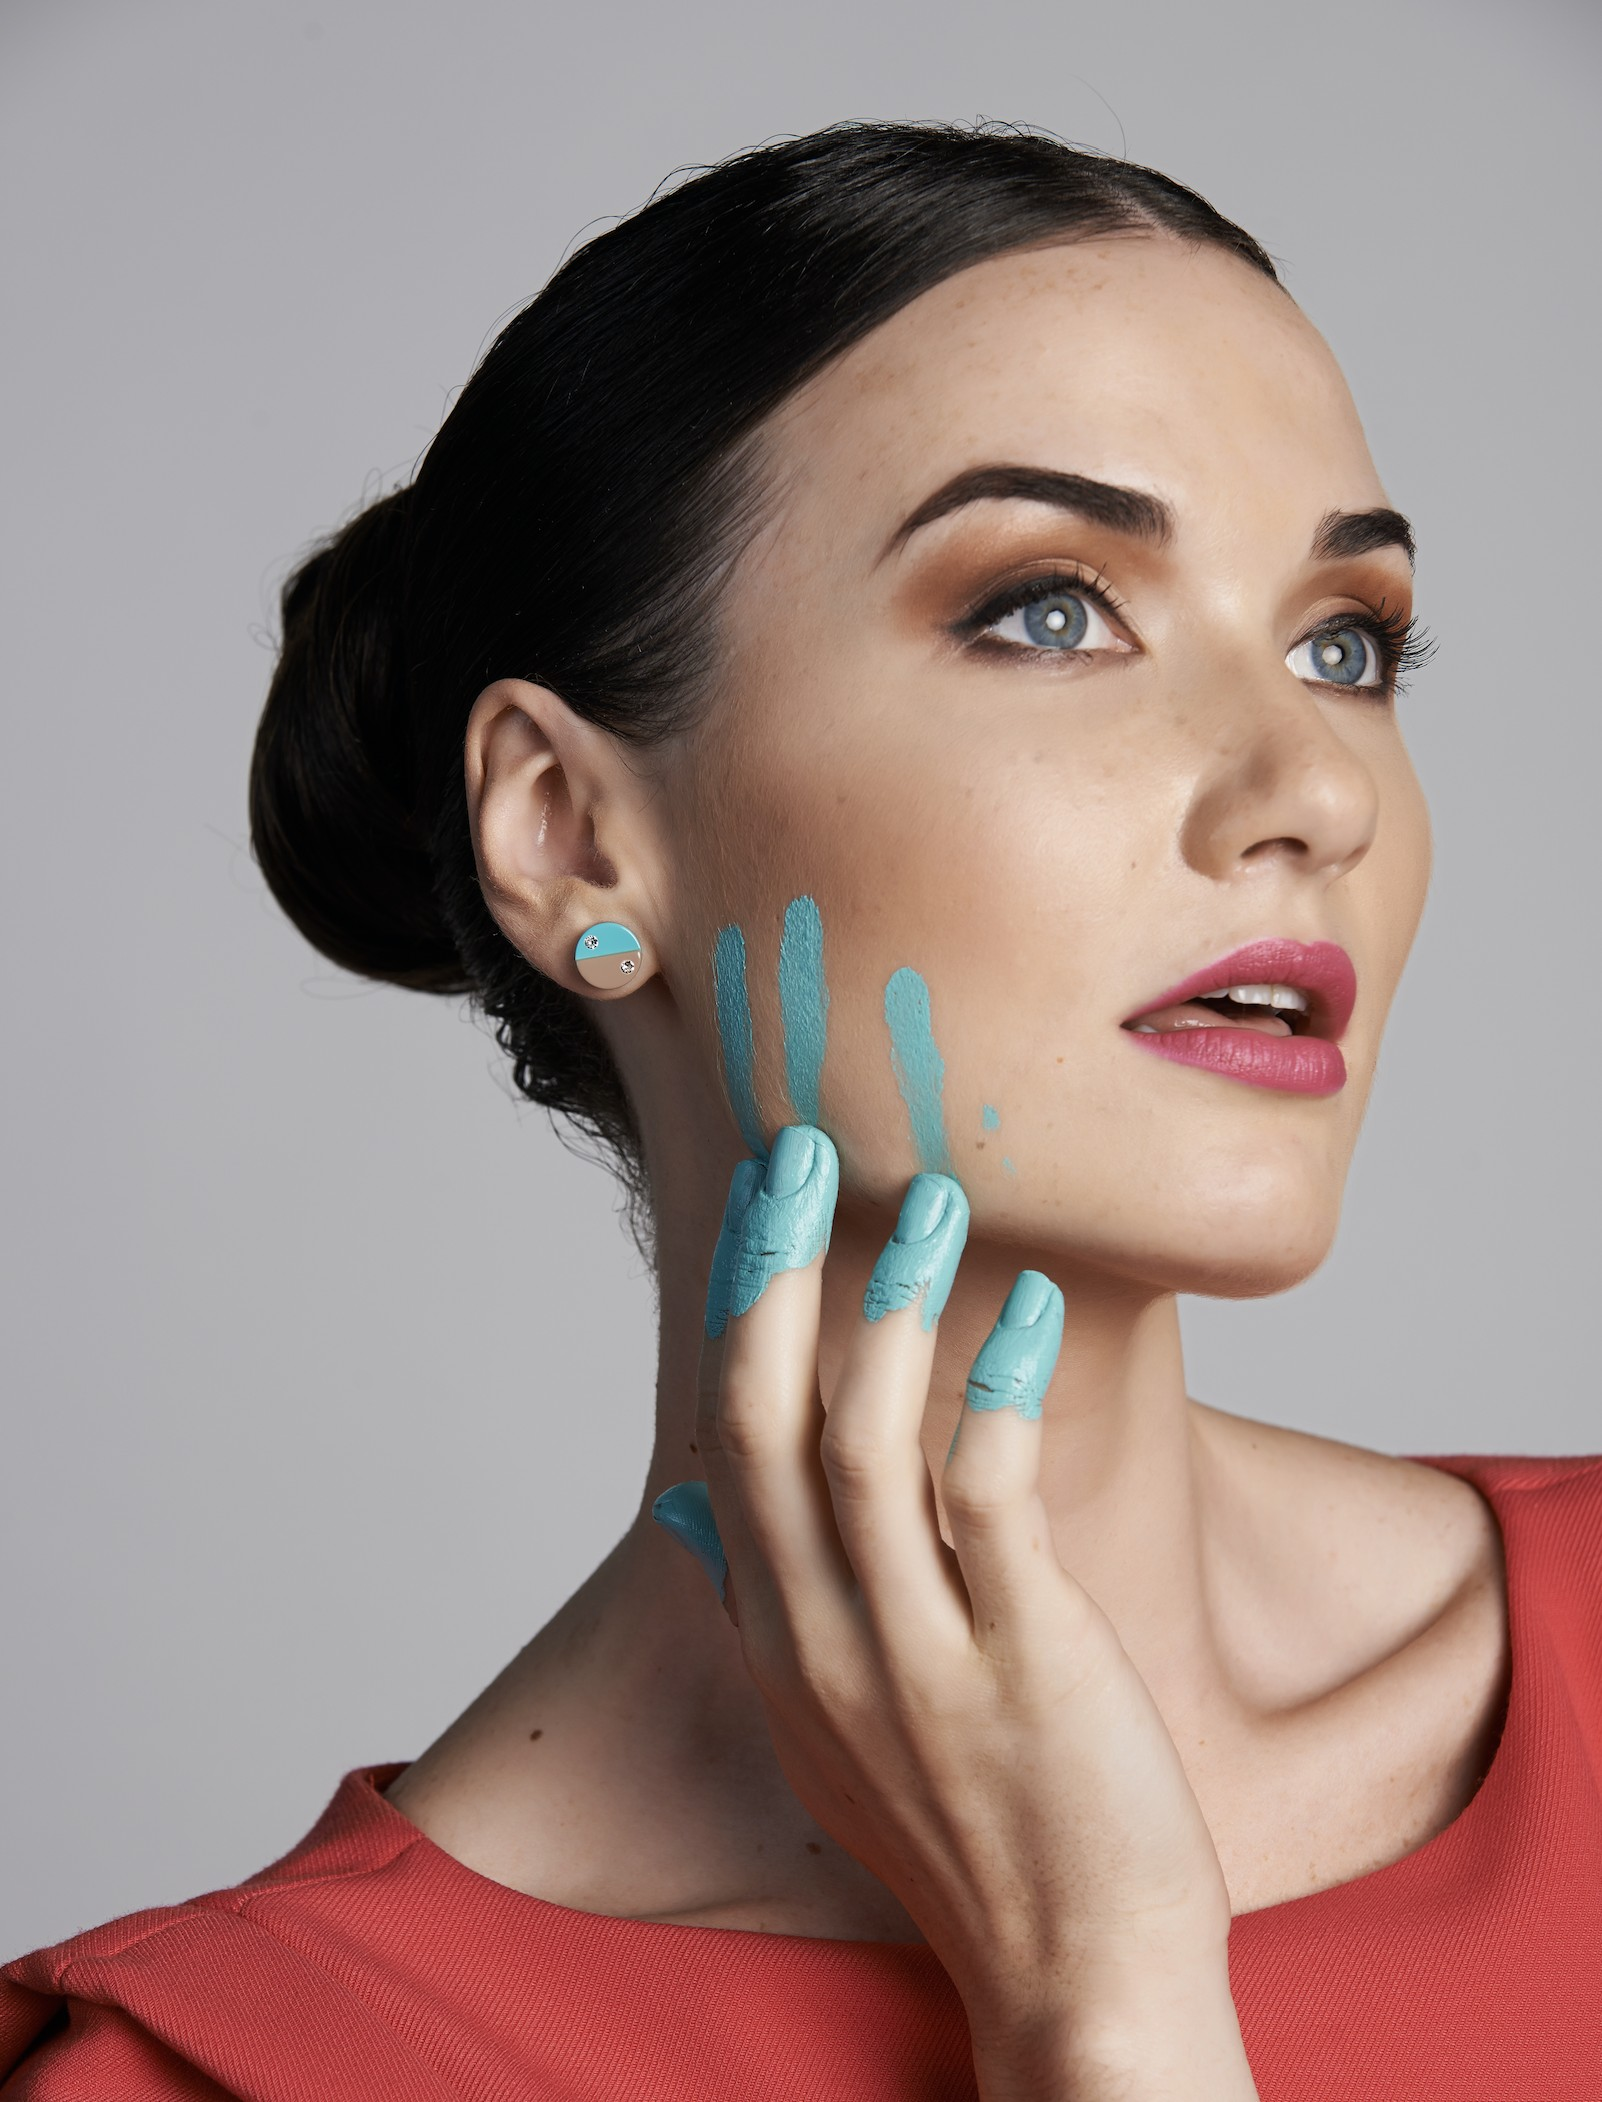 Kosmart model with Geometrix line earrings plays with colours on face